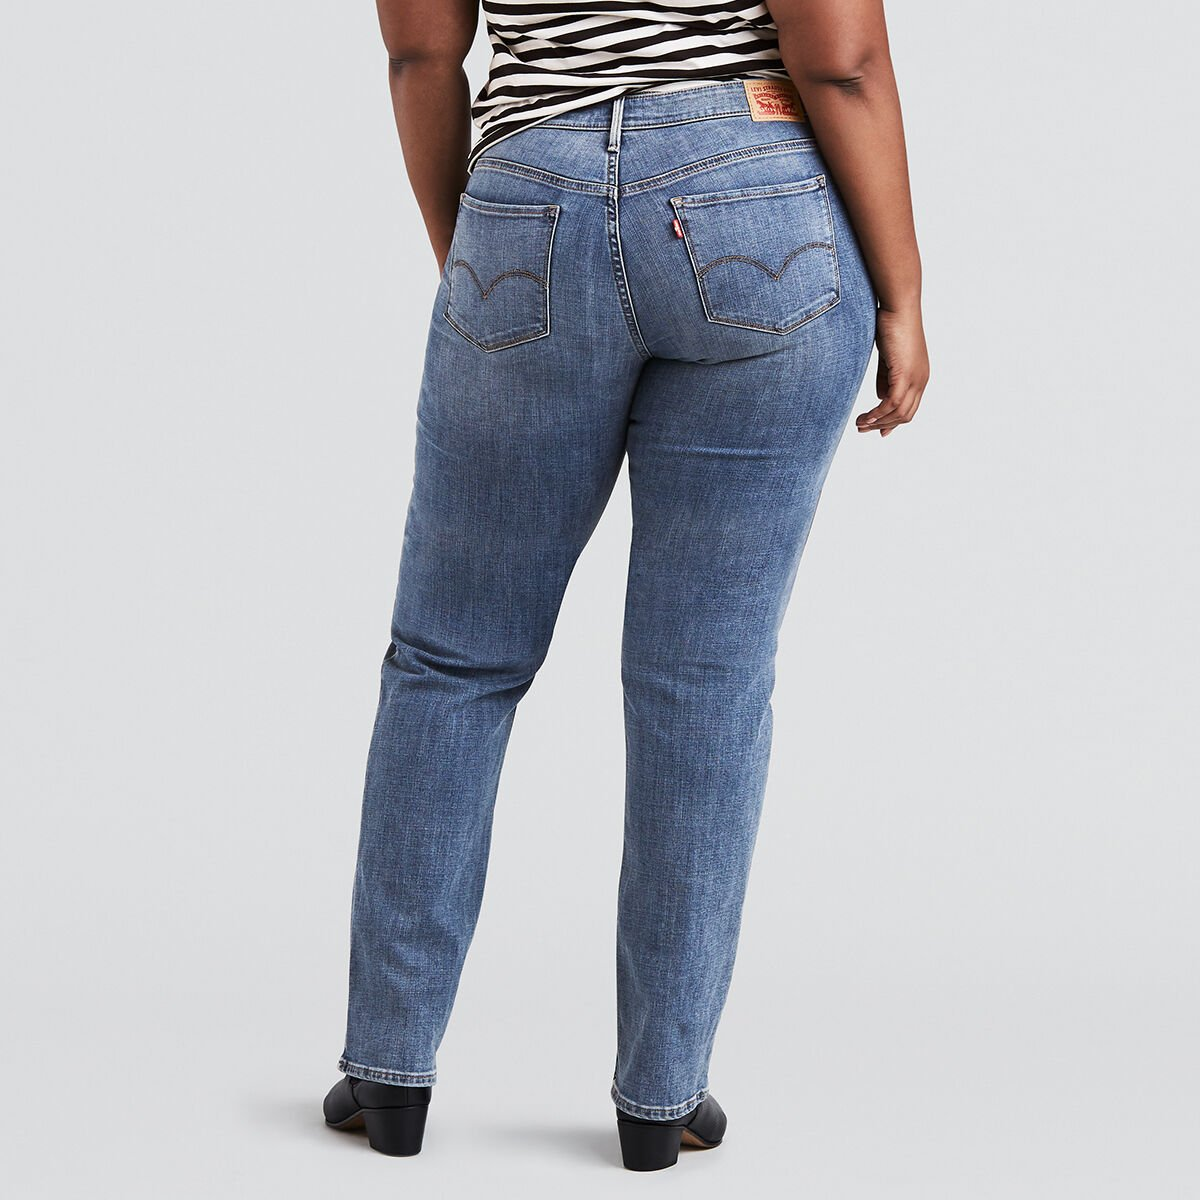 314 Straight Size Size Jeansplus Shaping Shaping 314 Straight Jeansplus HIe29YWEDb